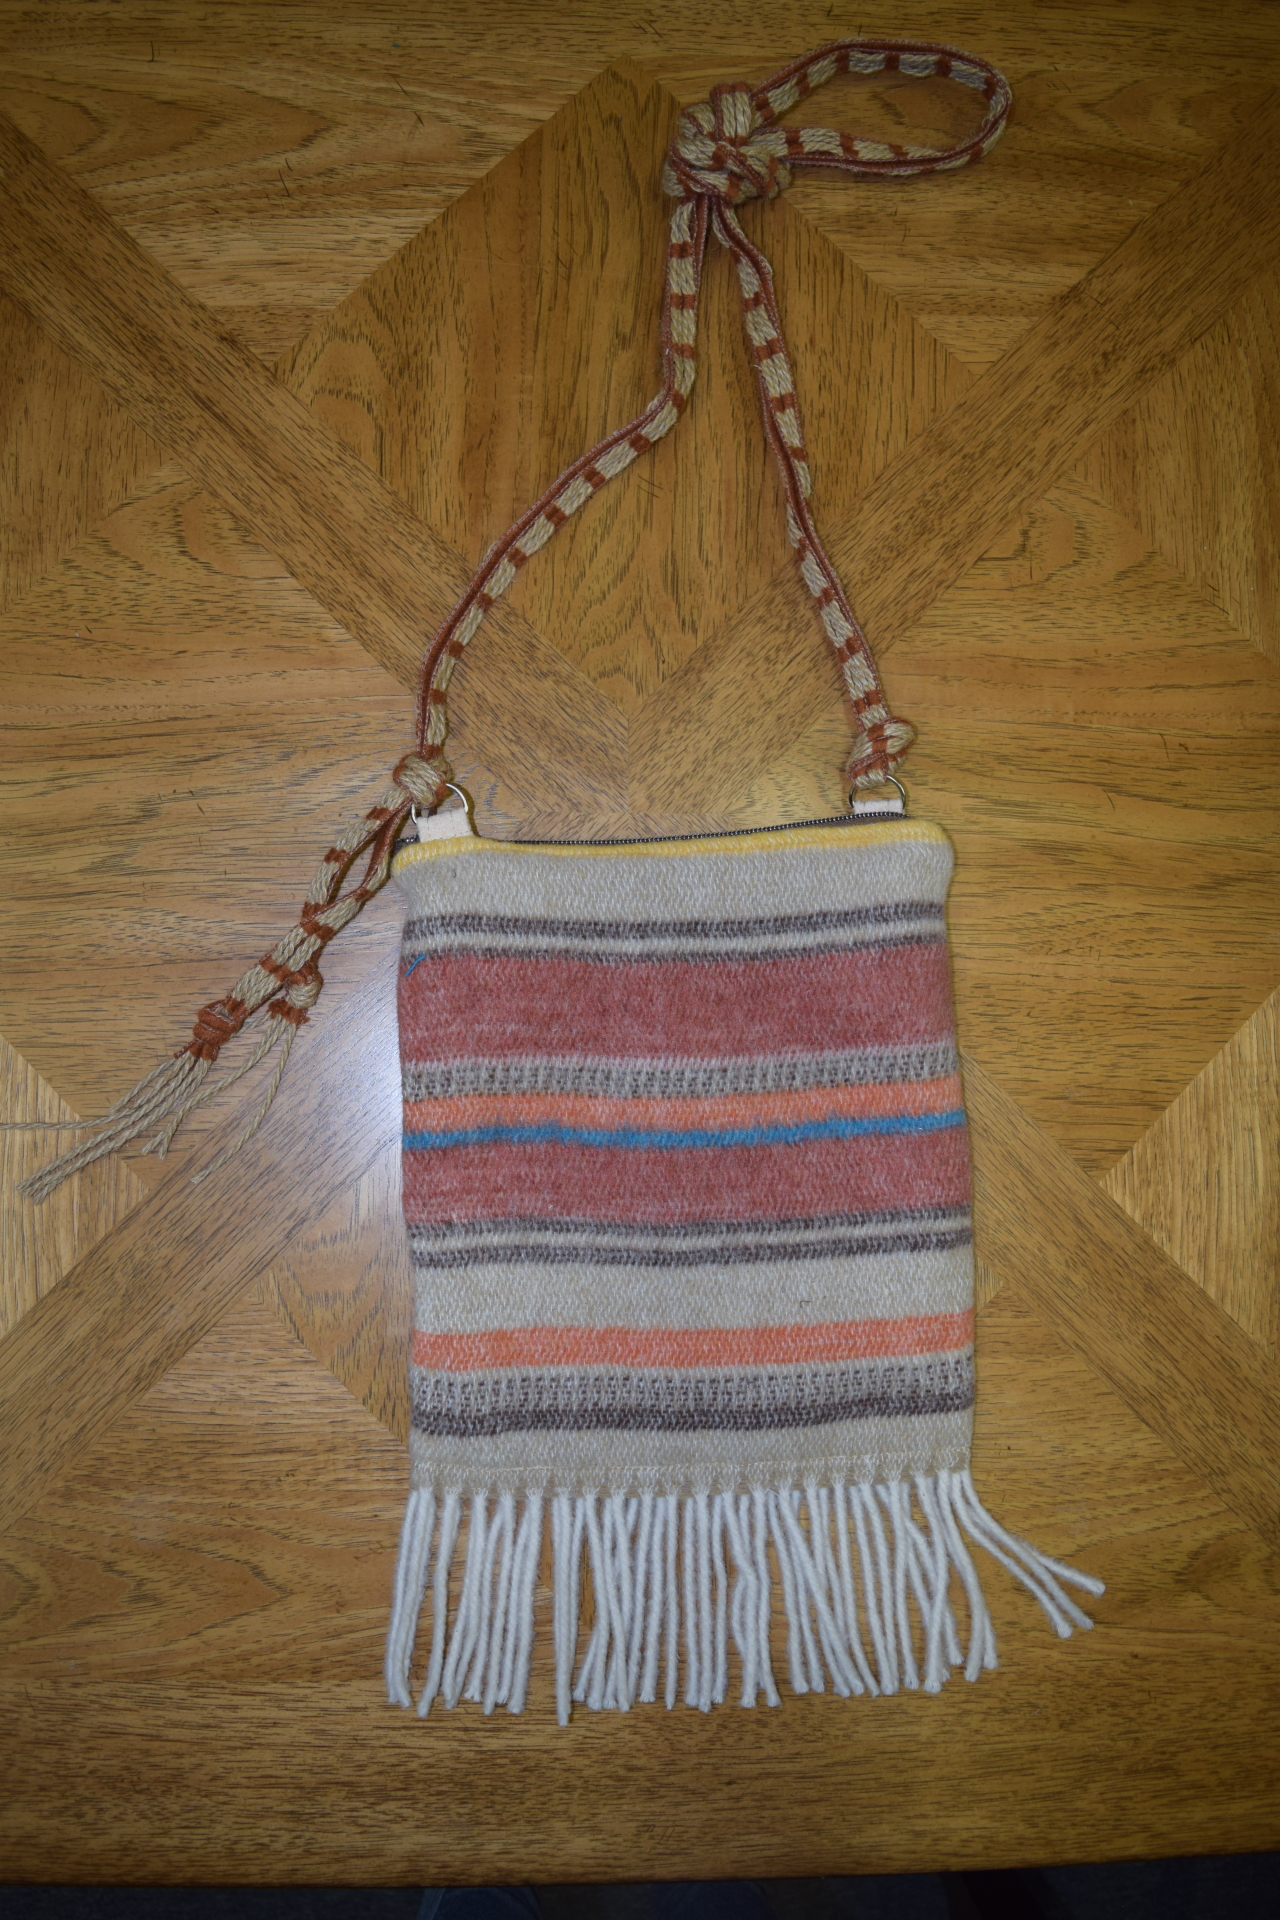 #B07 ARAPAHOE FRINGE ZIP BAG - $89.95